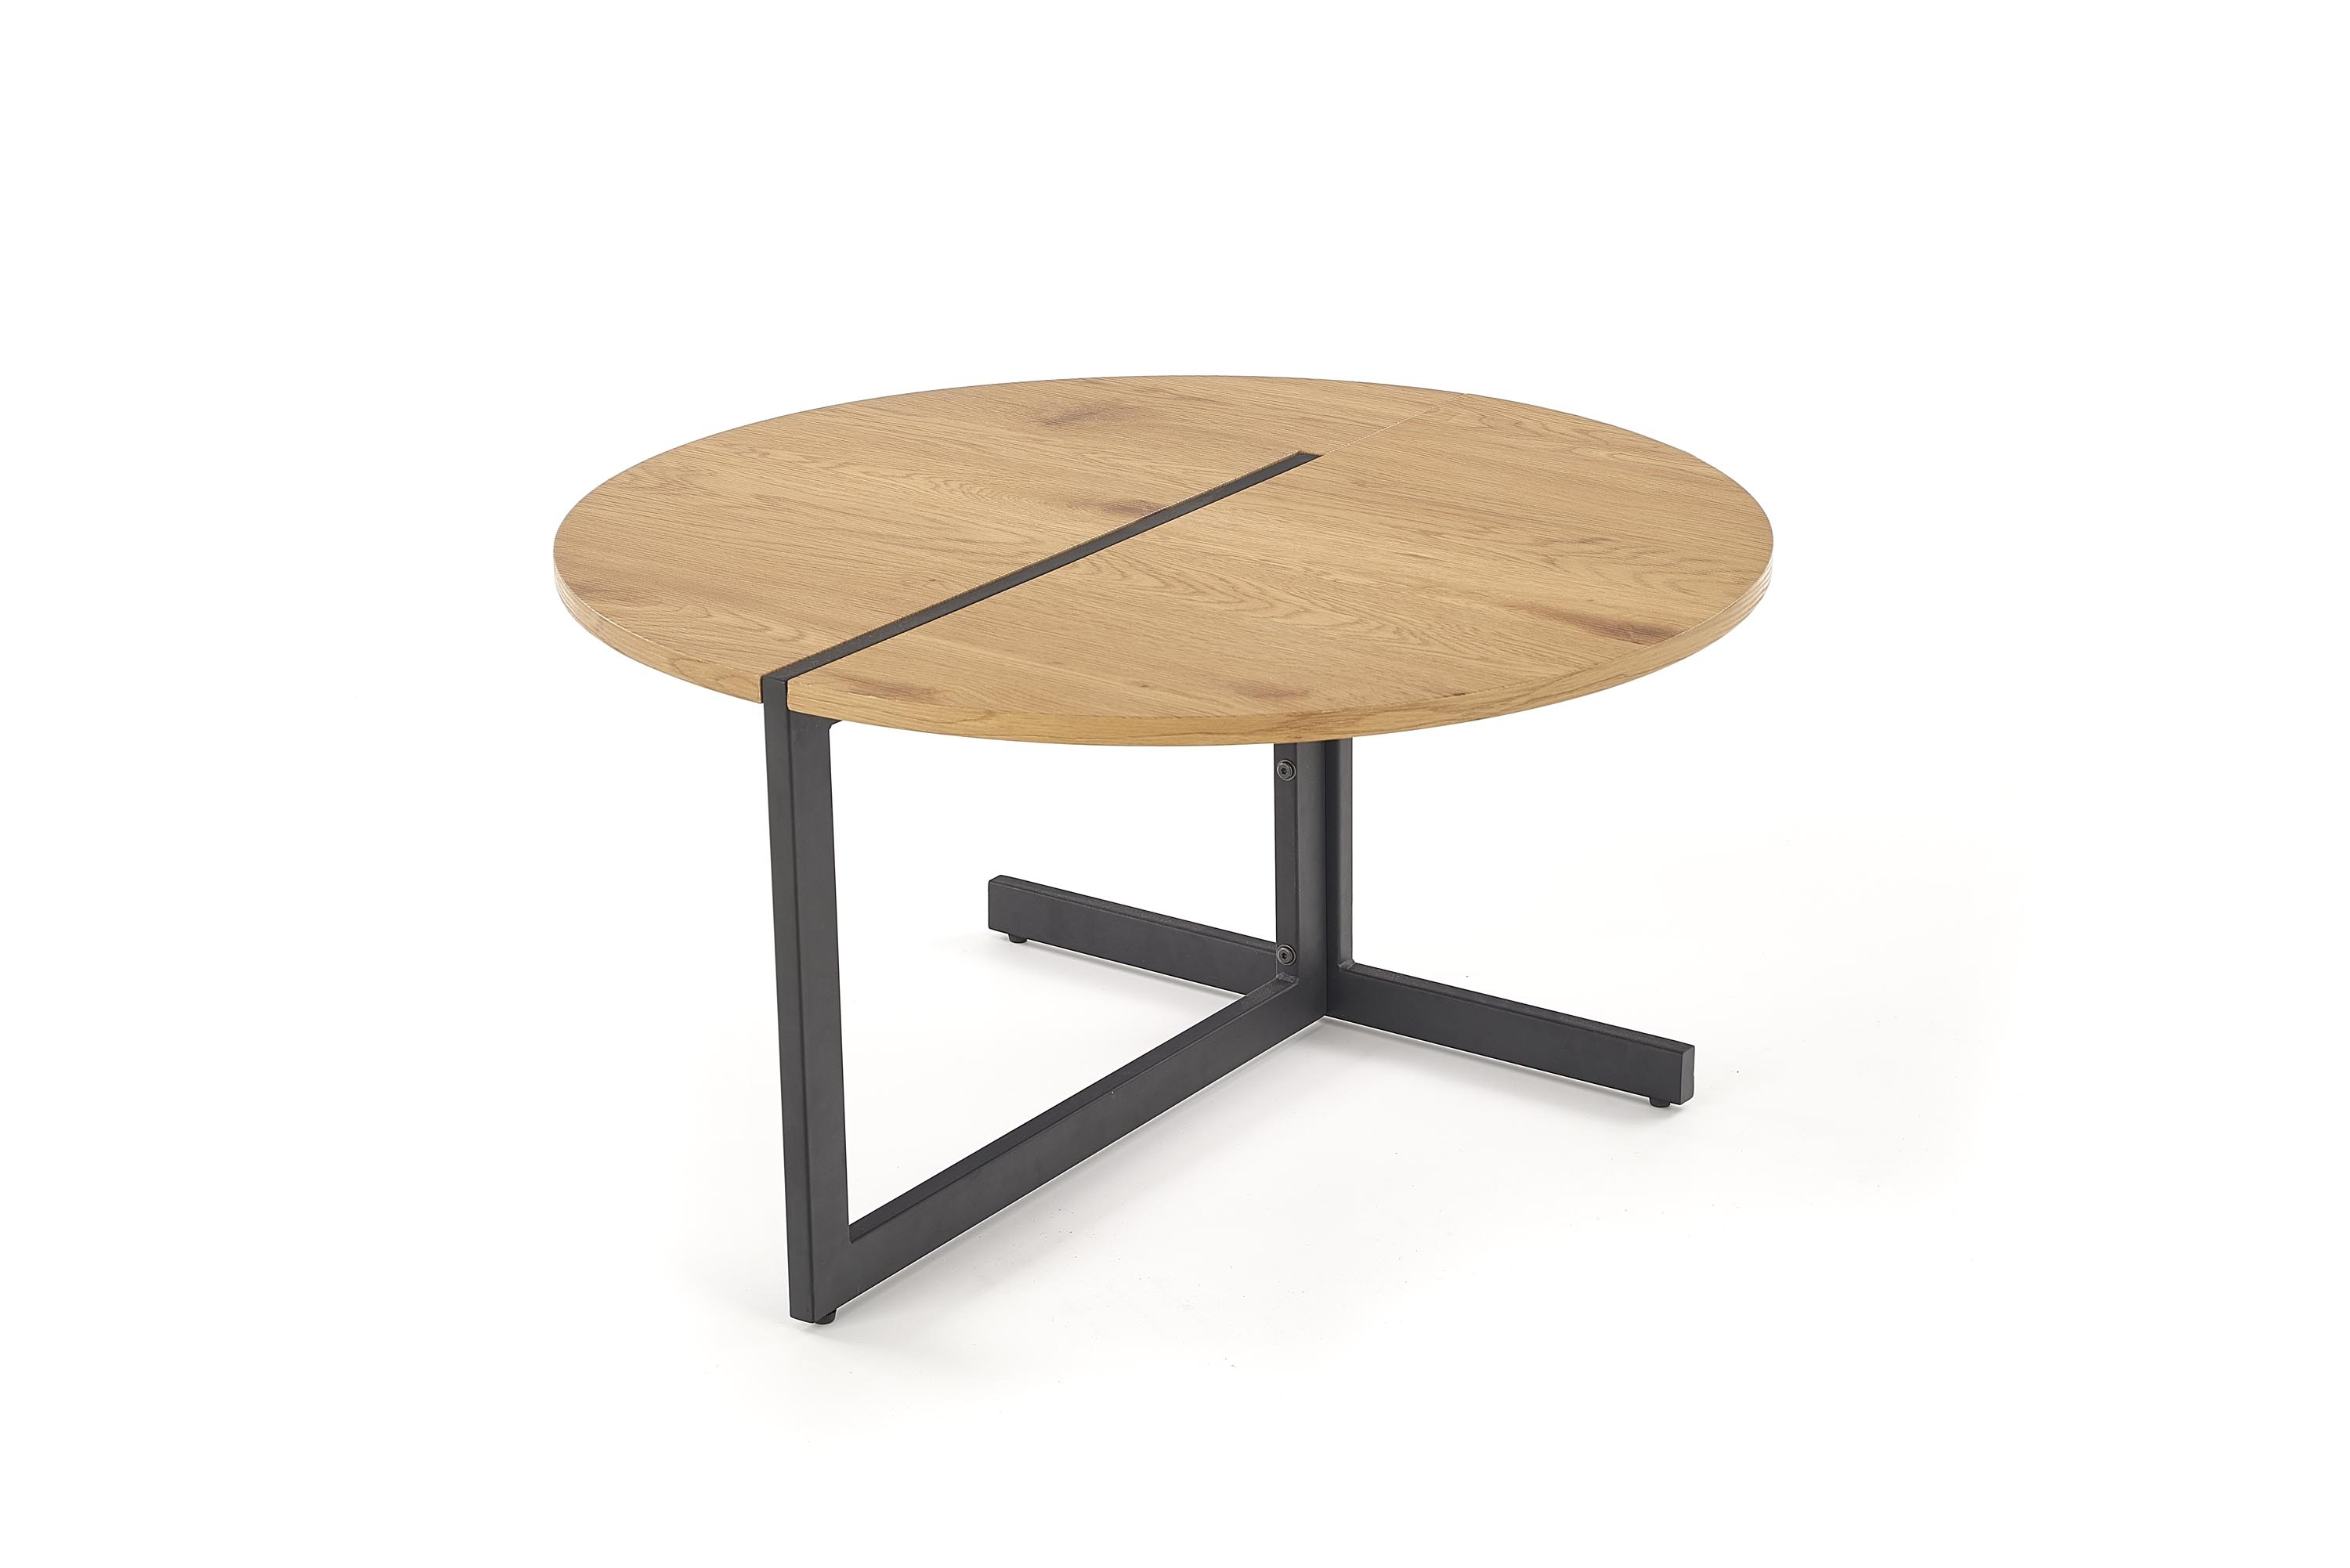 Masa de cafea din MDF si metal Amora Golden Oak / Black, Ø80xH43 cm imagine